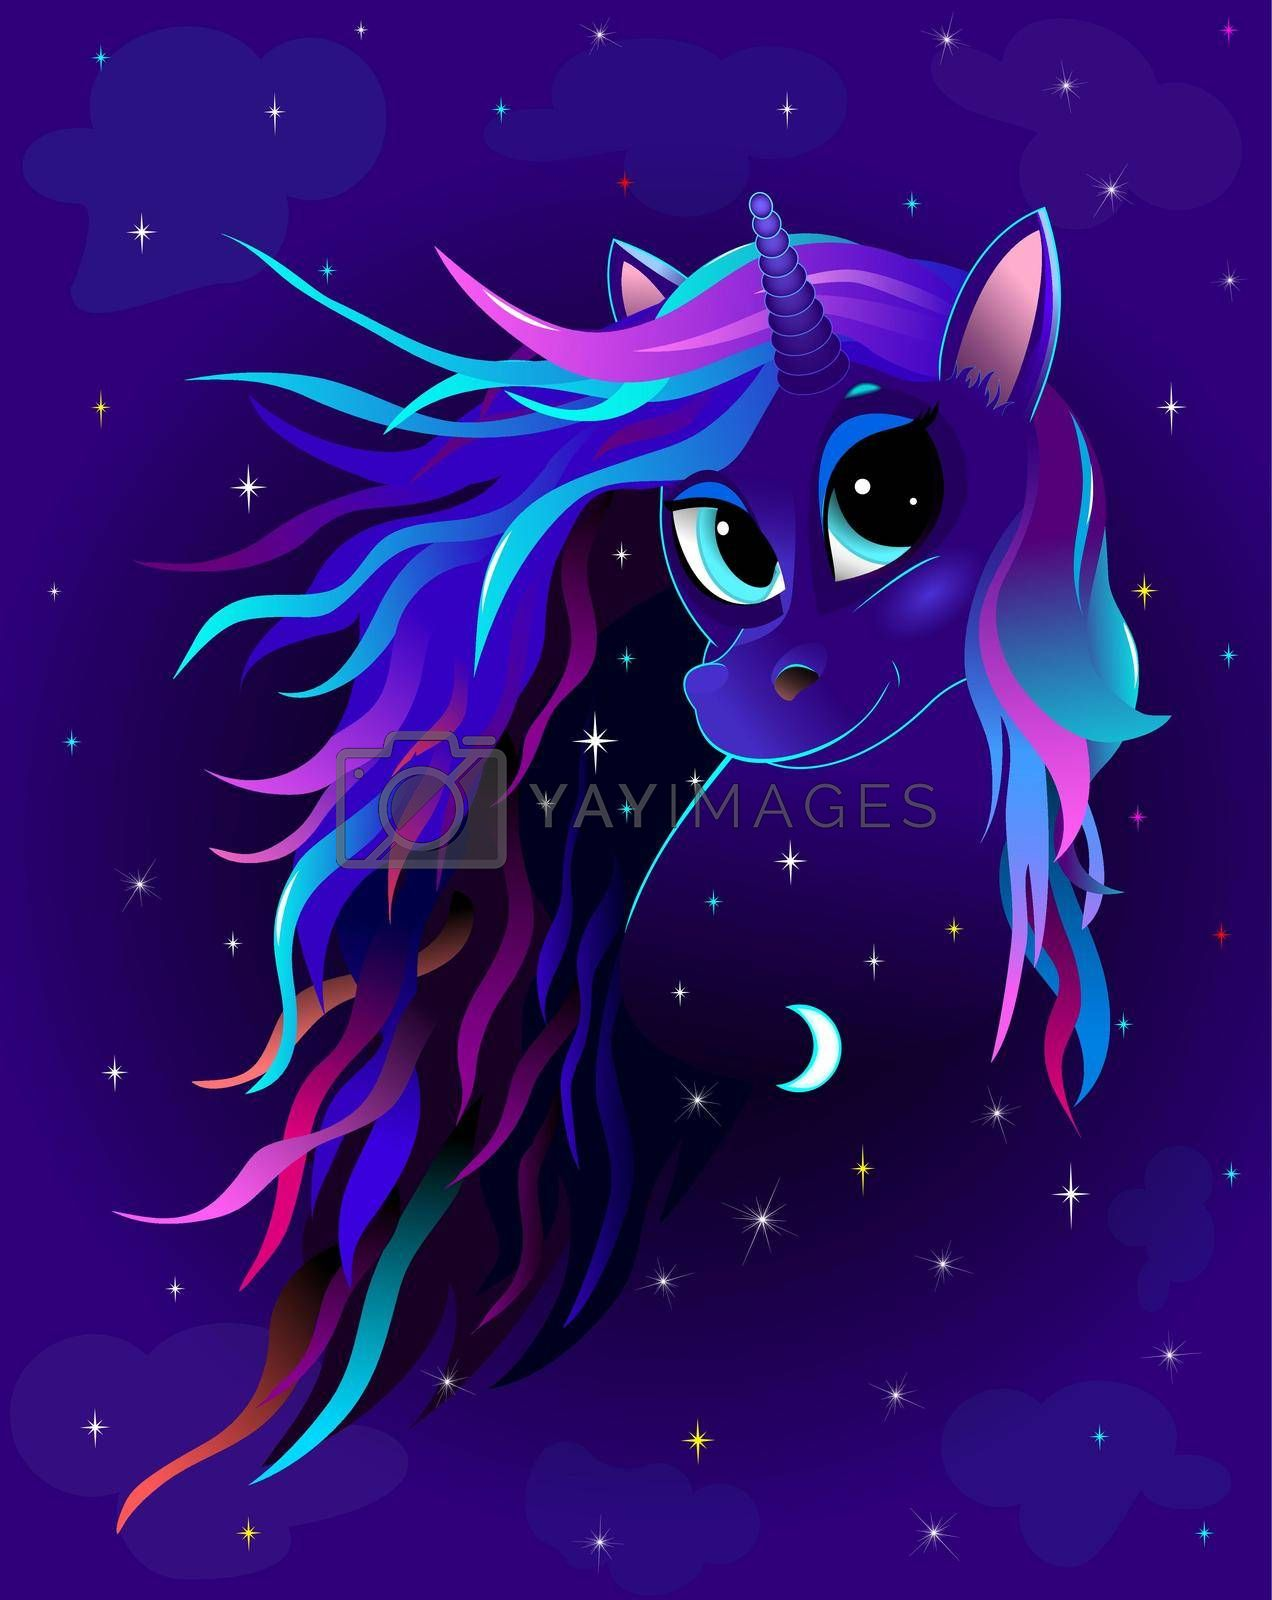 Unicorn night starry sky by liolle